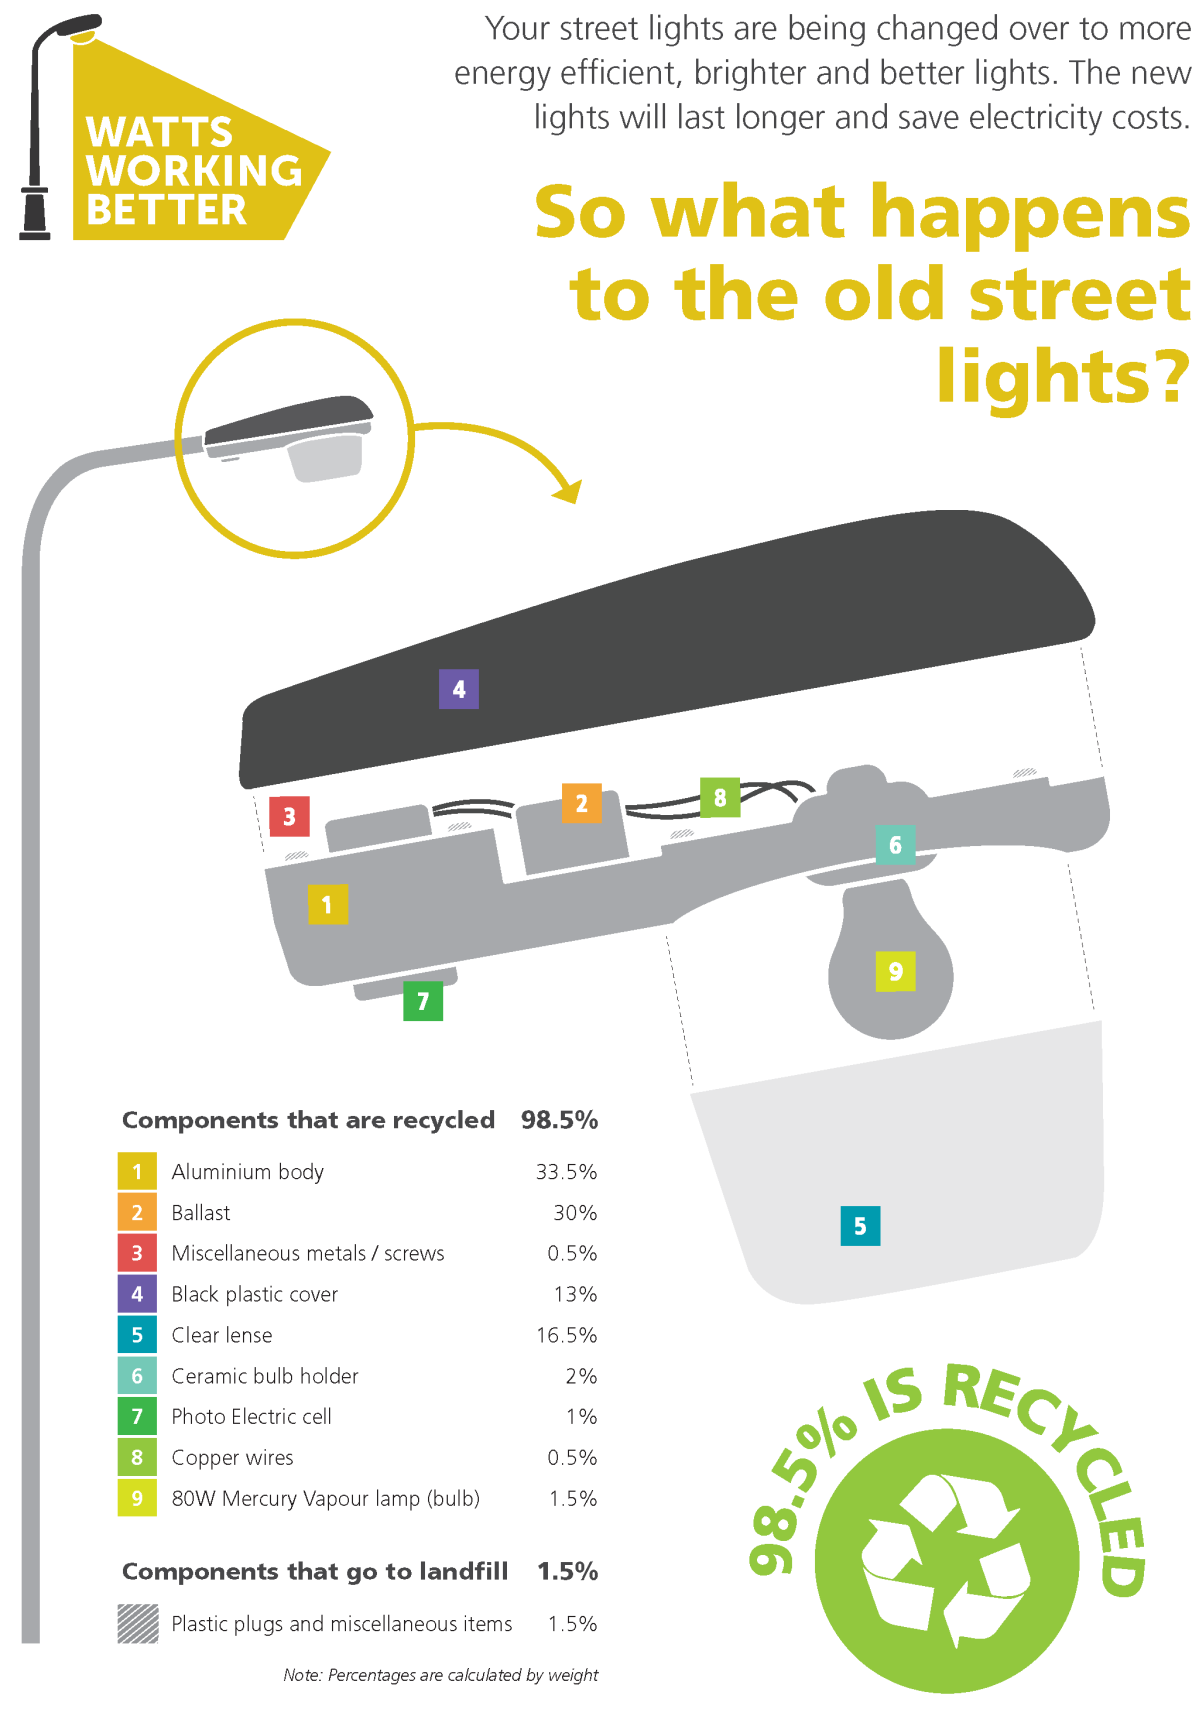 Find out what happens to the old street lights by downloading the Watts Working Better Streetlight Recycling Poster.